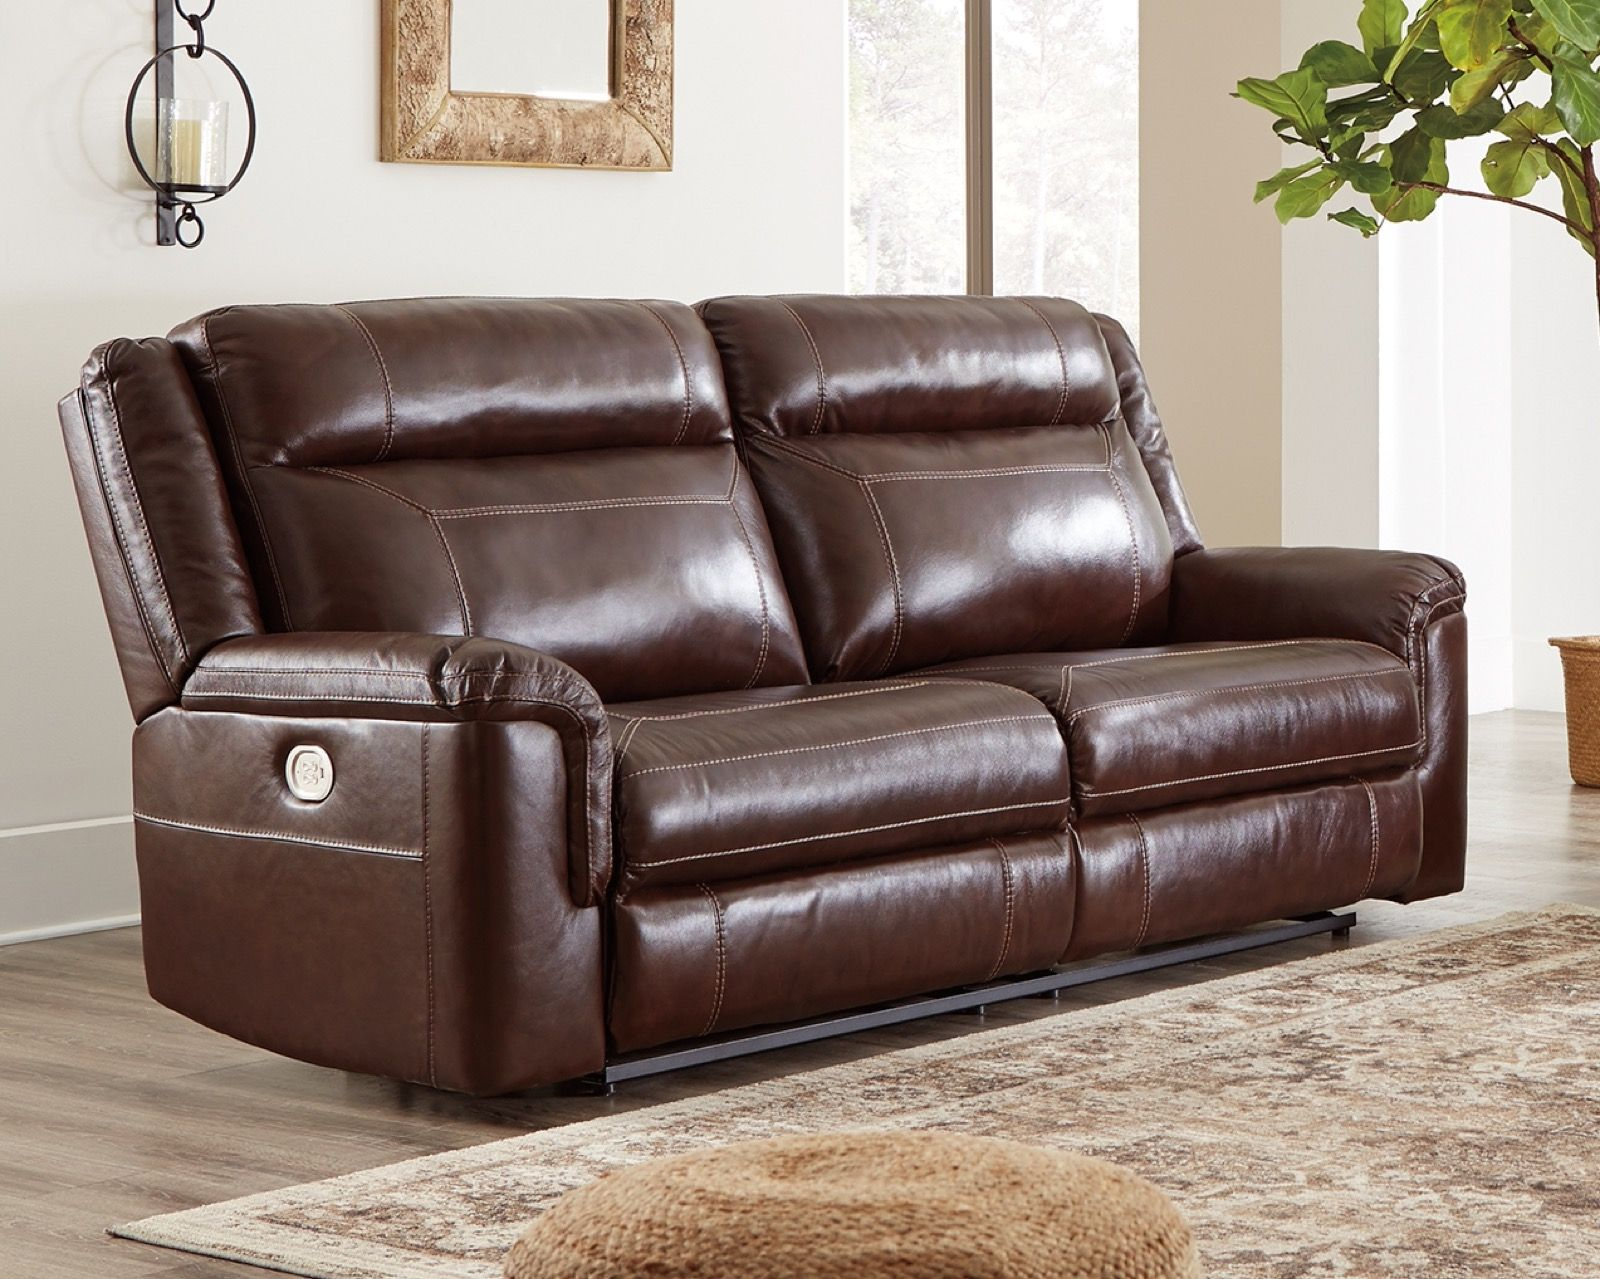 Fine Signature Design Wyline Coffee Power Reclining Sofa With Adjustable Headrest Pdpeps Interior Chair Design Pdpepsorg